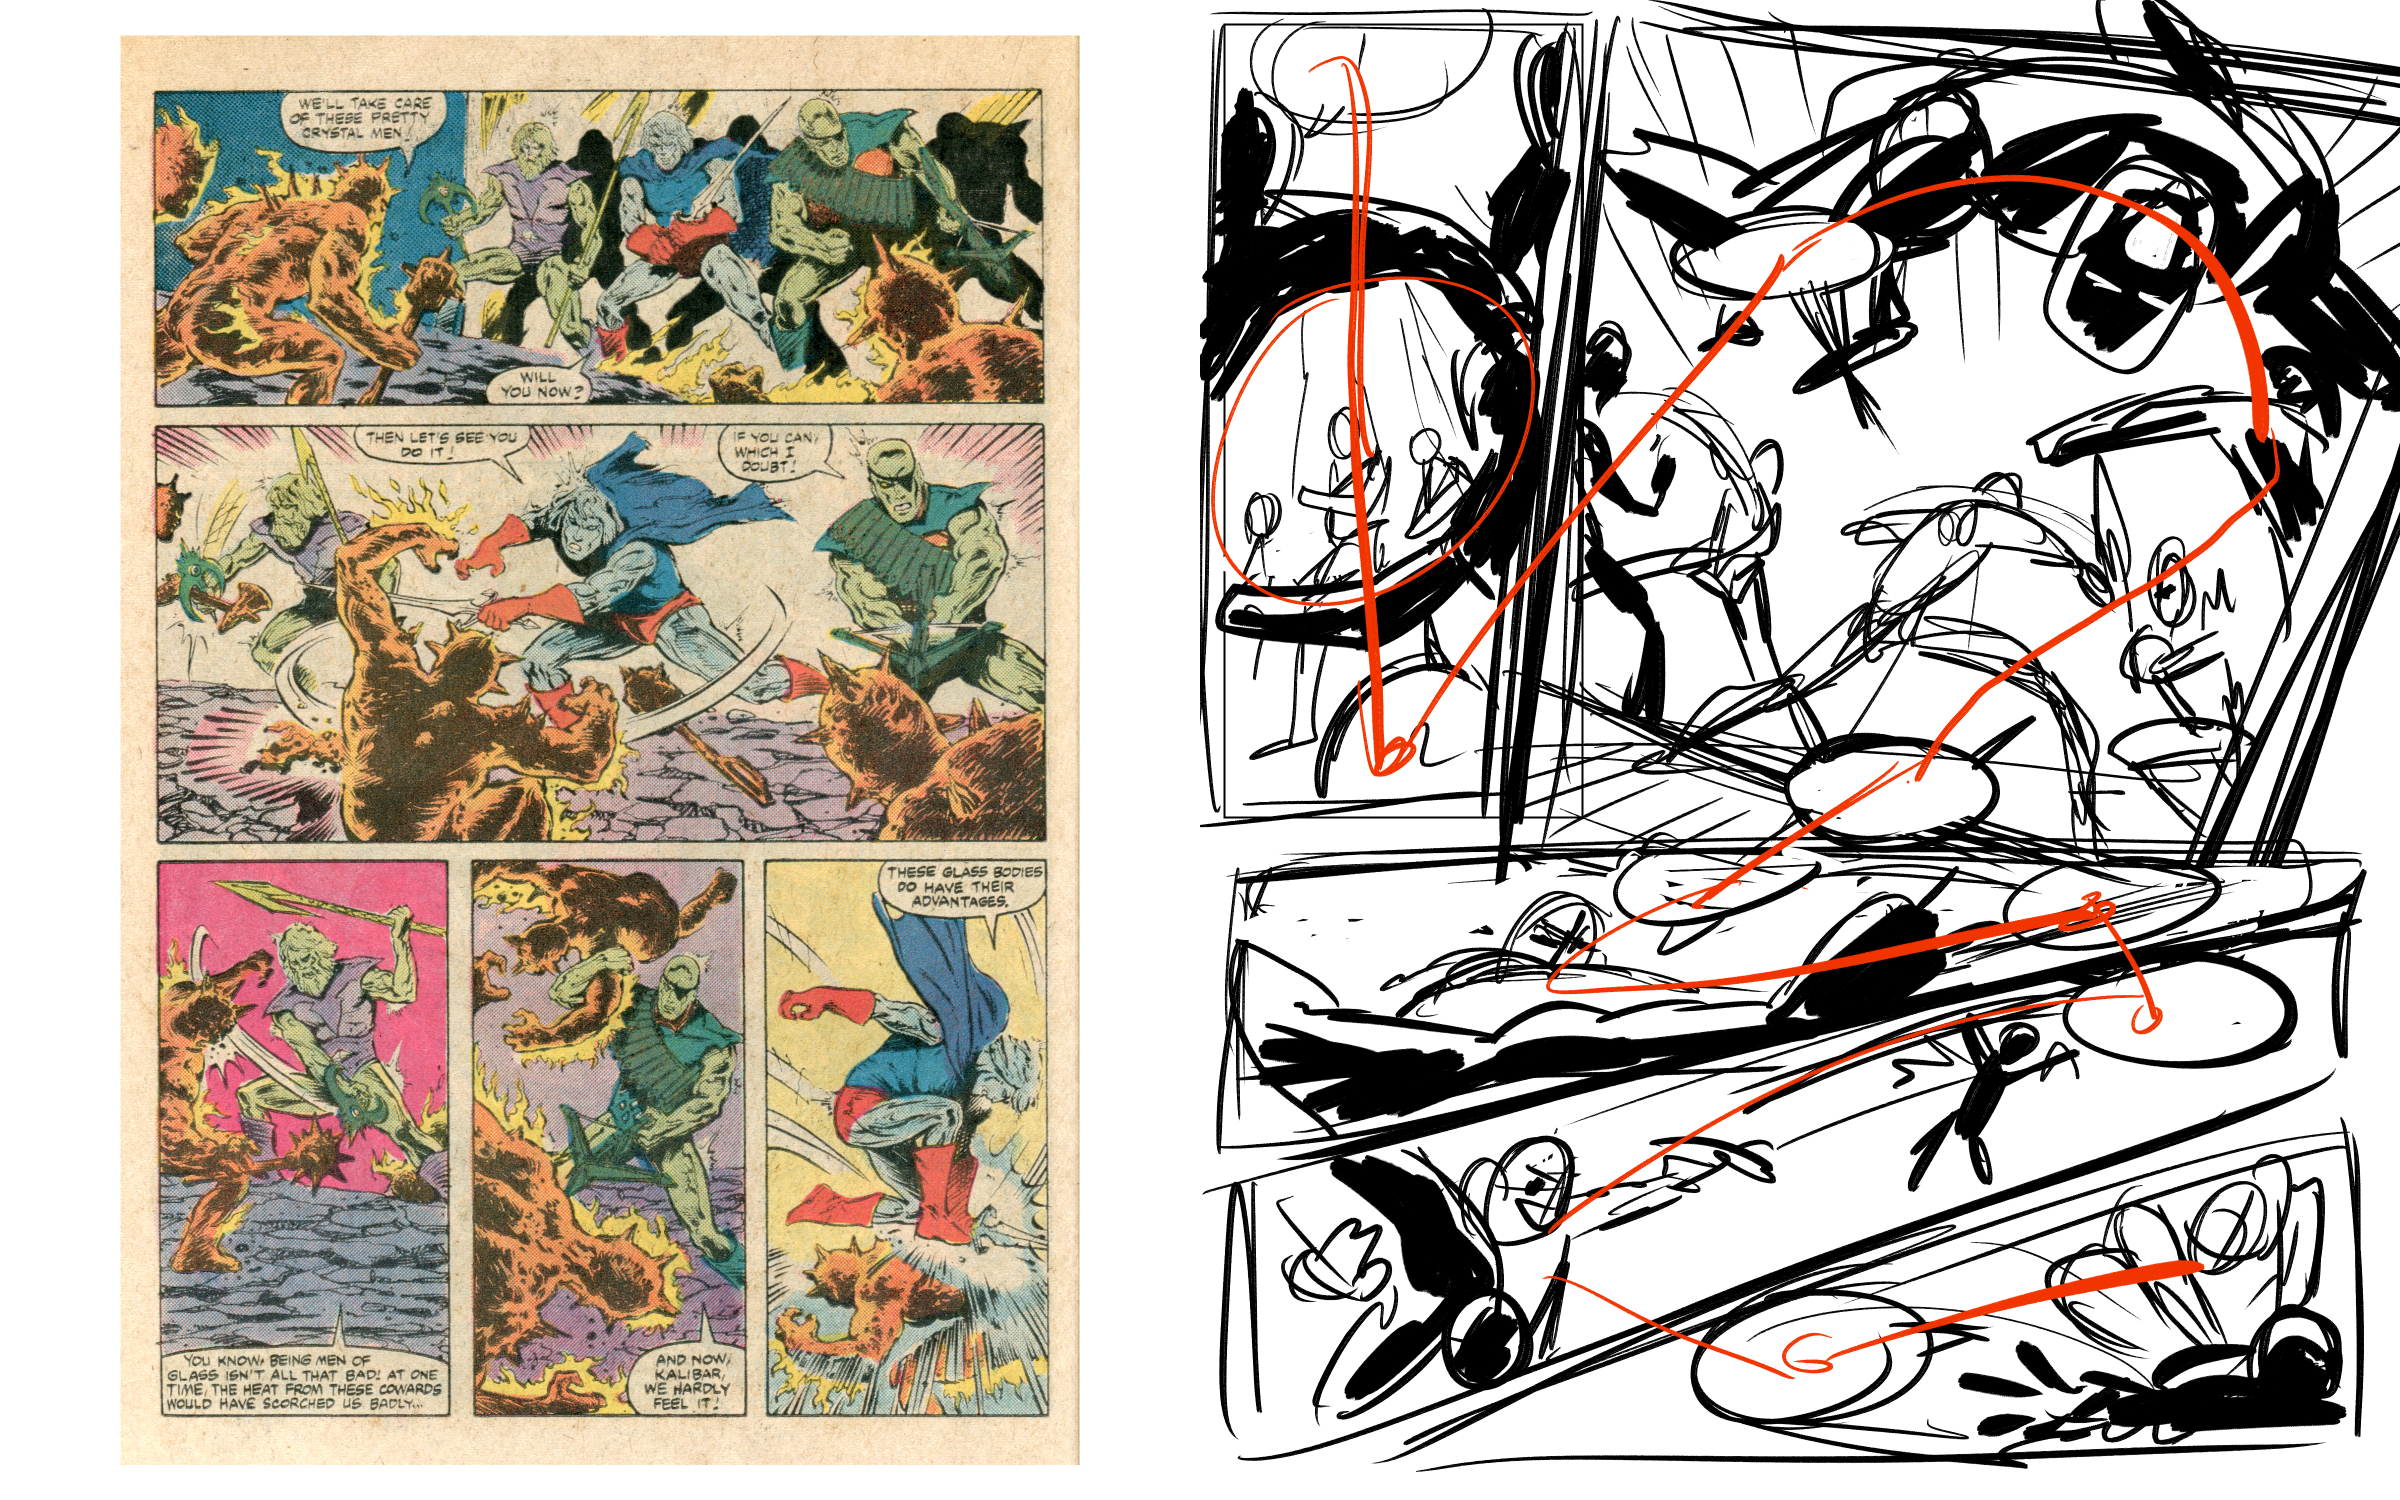 The page Jerzy used for th e exercise in this episode, and the resulting page reimagining.